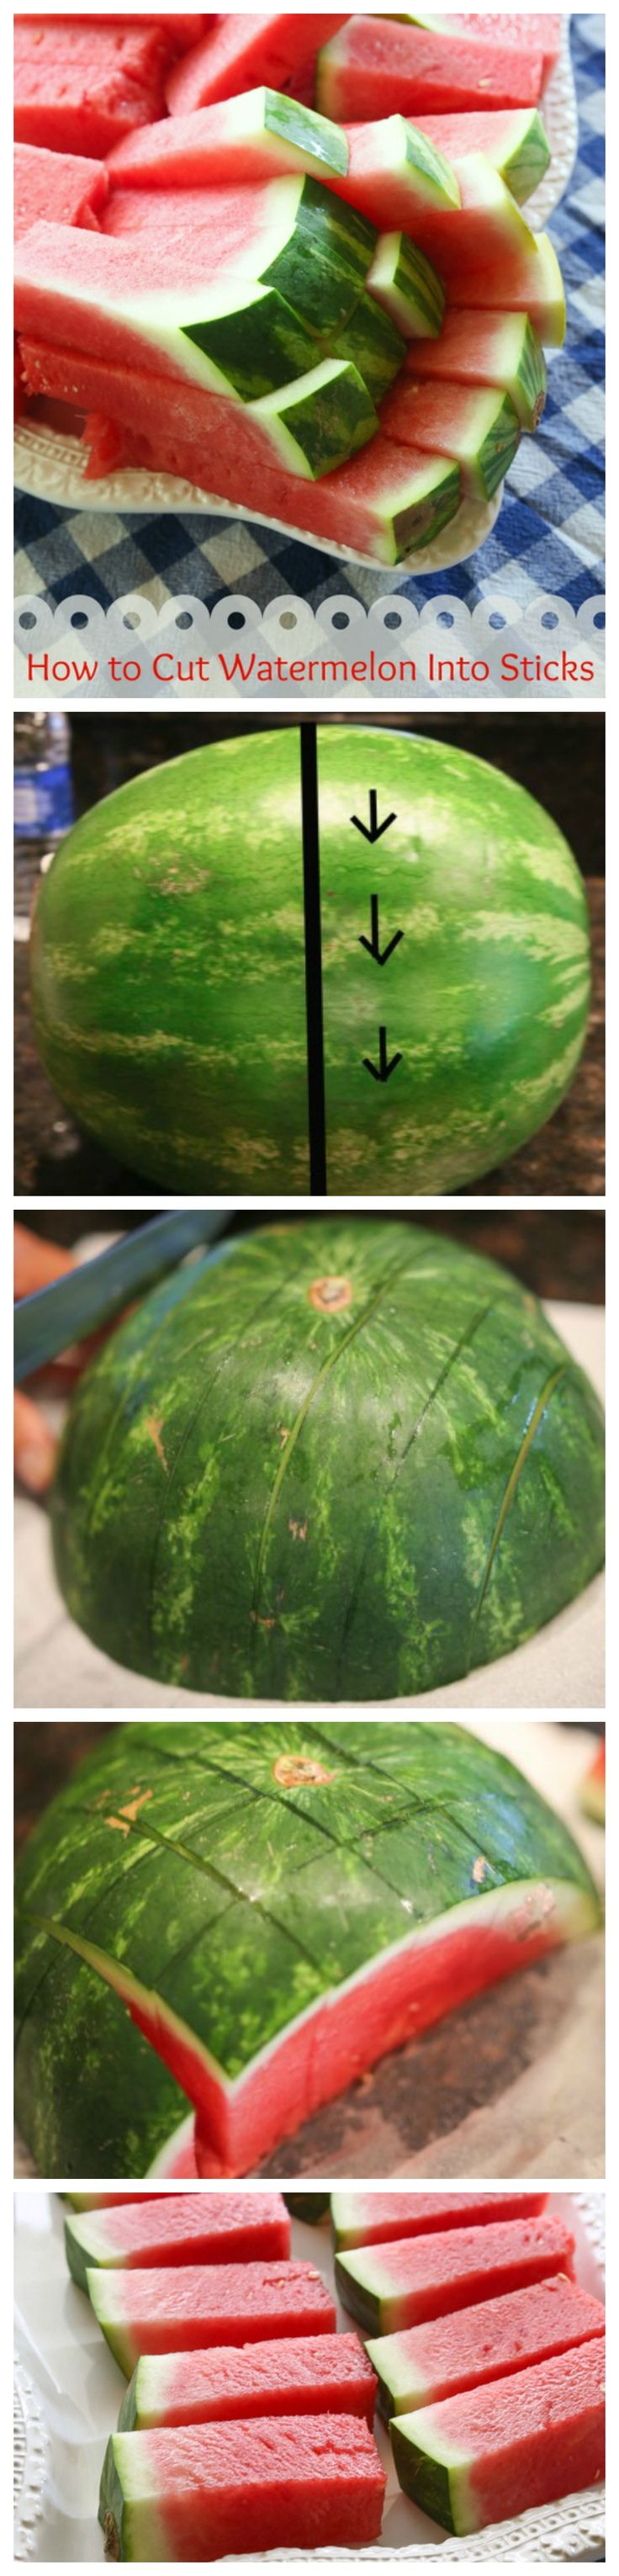 How to Cut a Watermelon into Sticks ~ Cutting it this way makes it easy for…